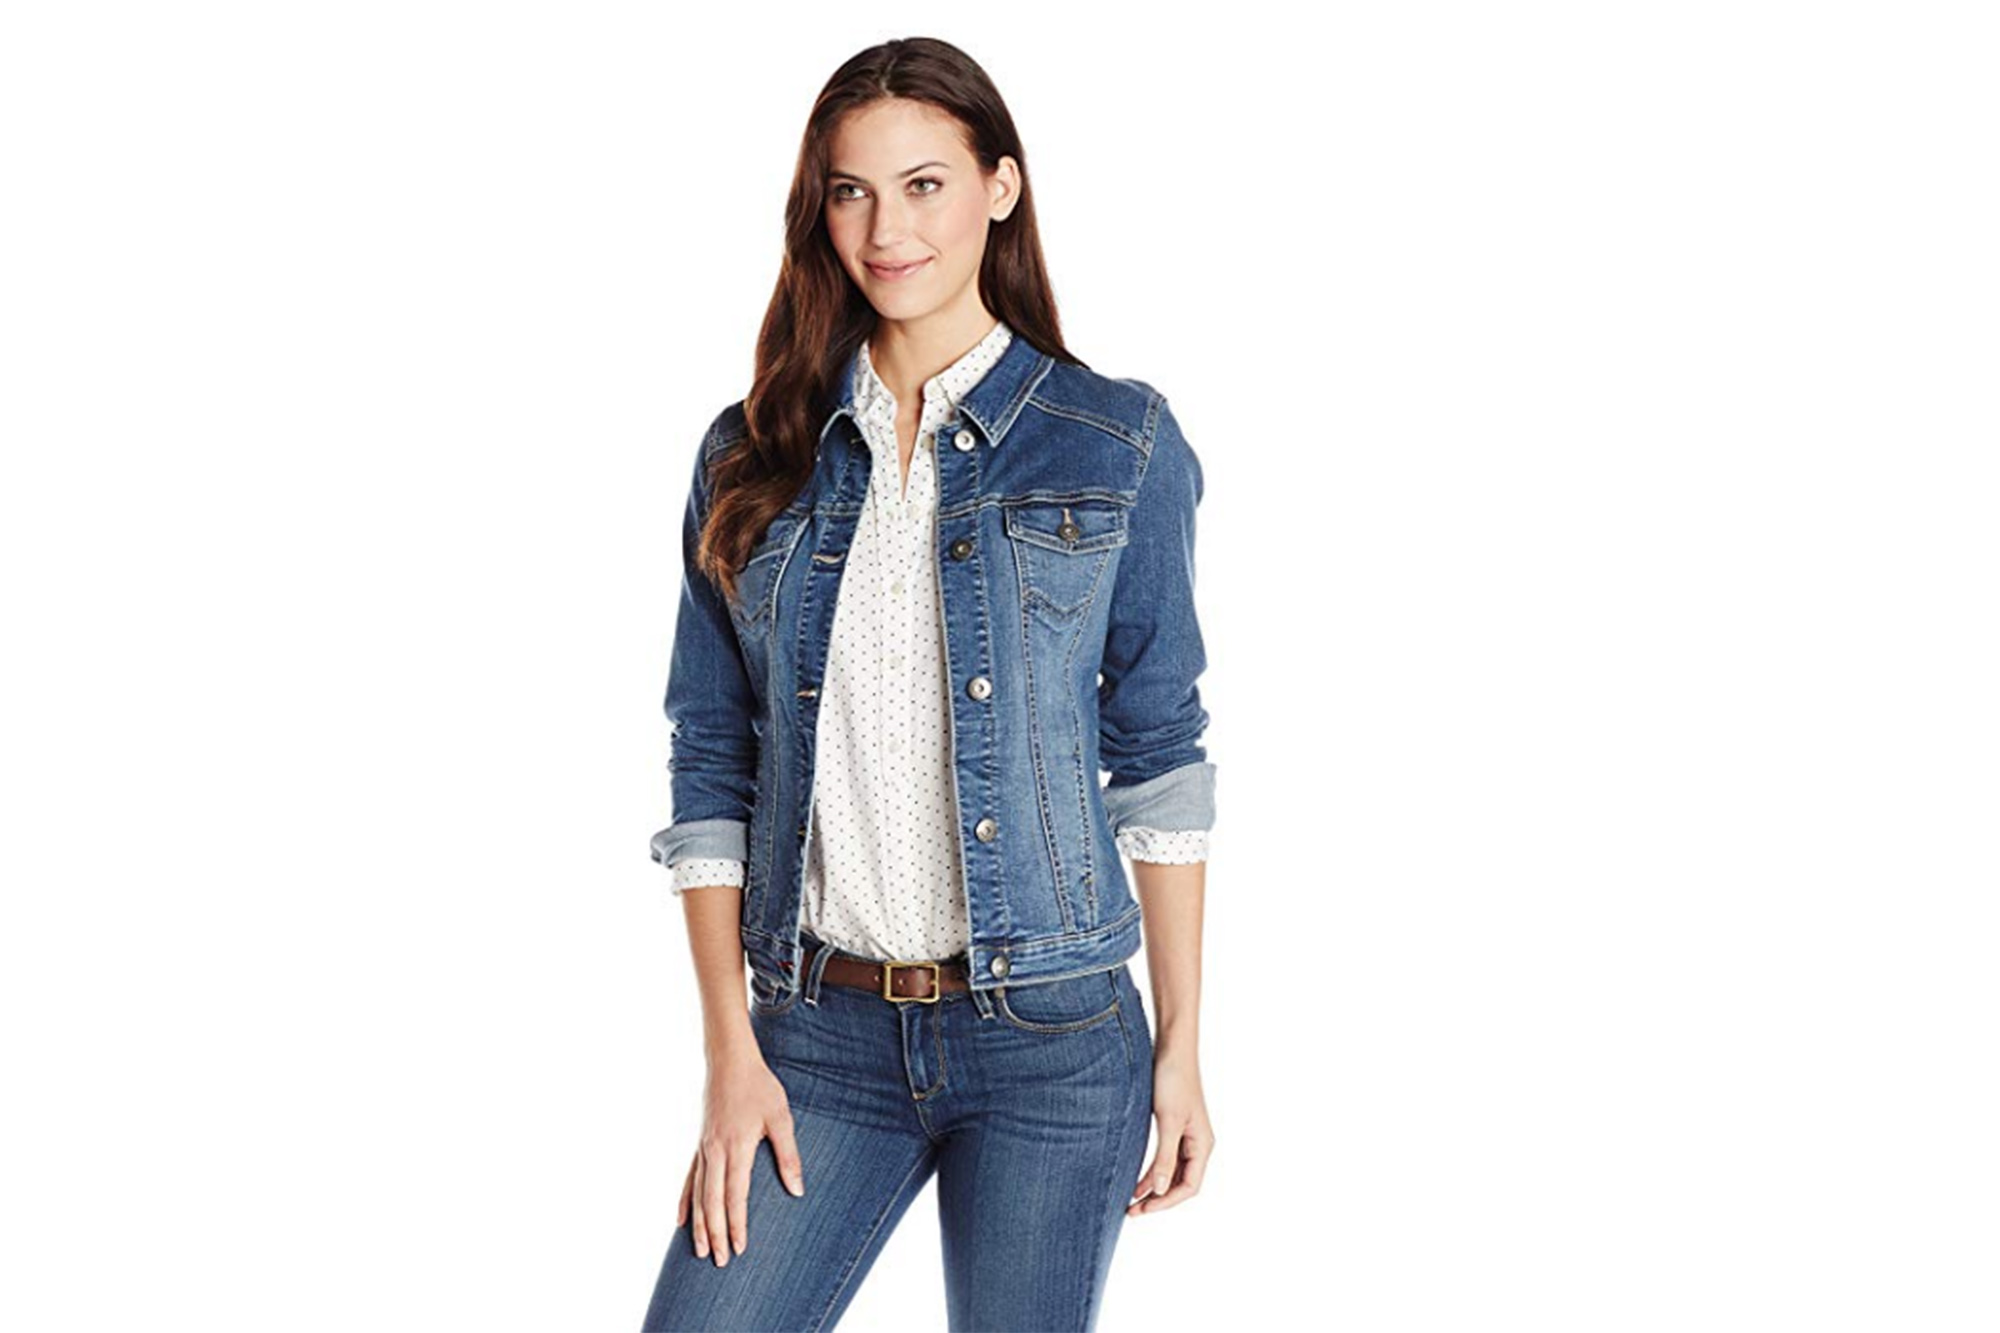 916c4b8f4faac This Bestselling Jean Jacket on Amazon Will Become Your Wardrobe MVP